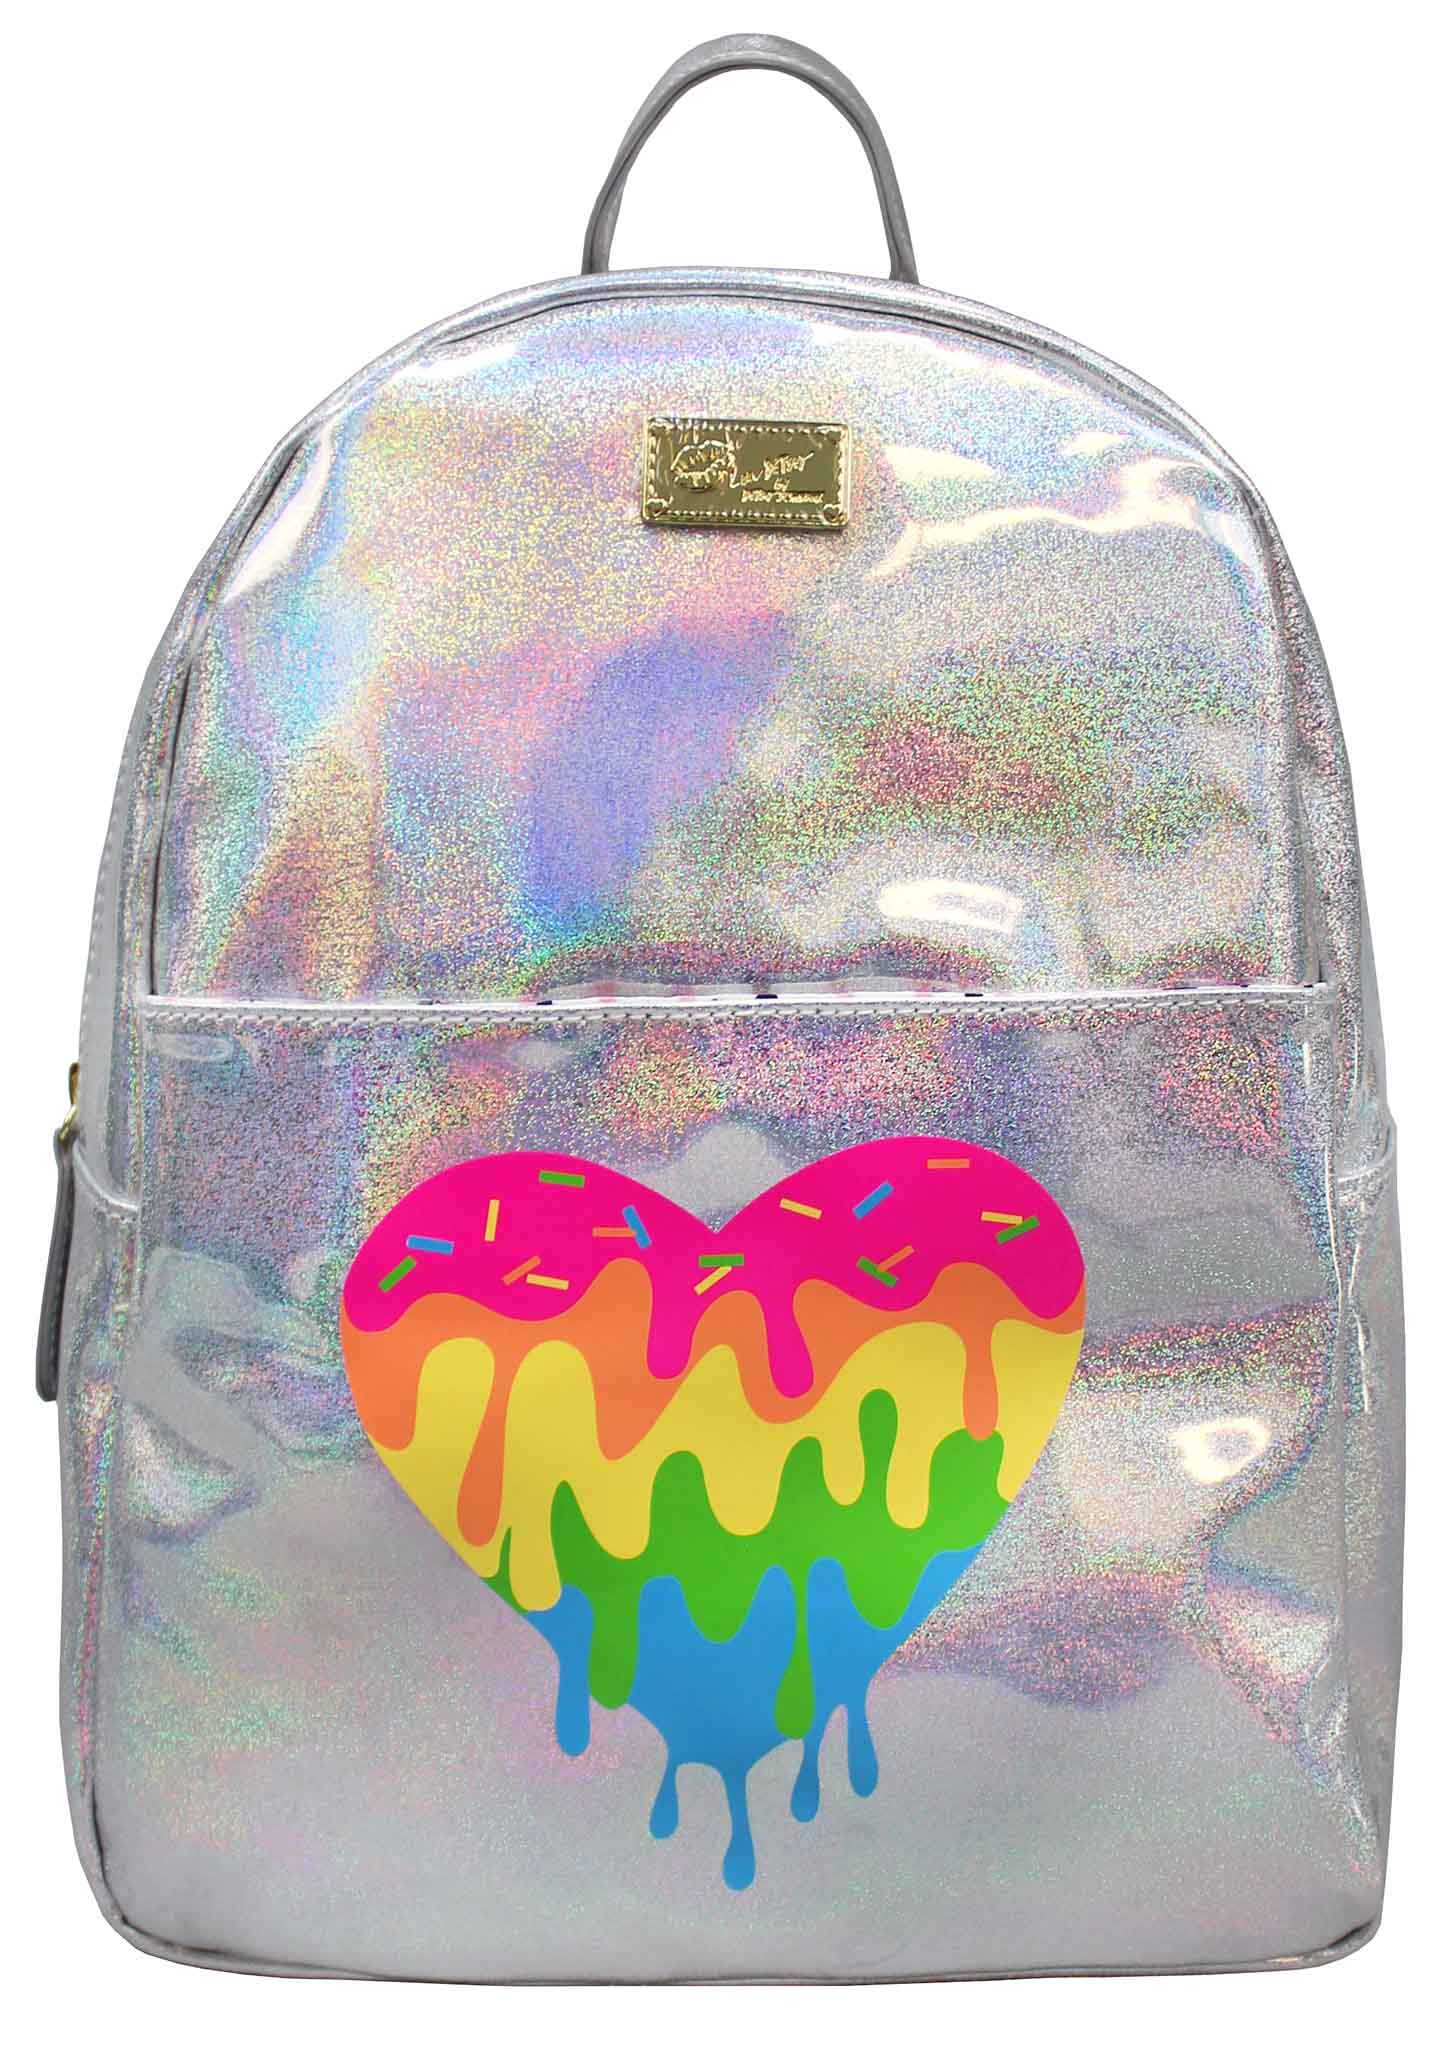 LBMariss Holographic Backpack